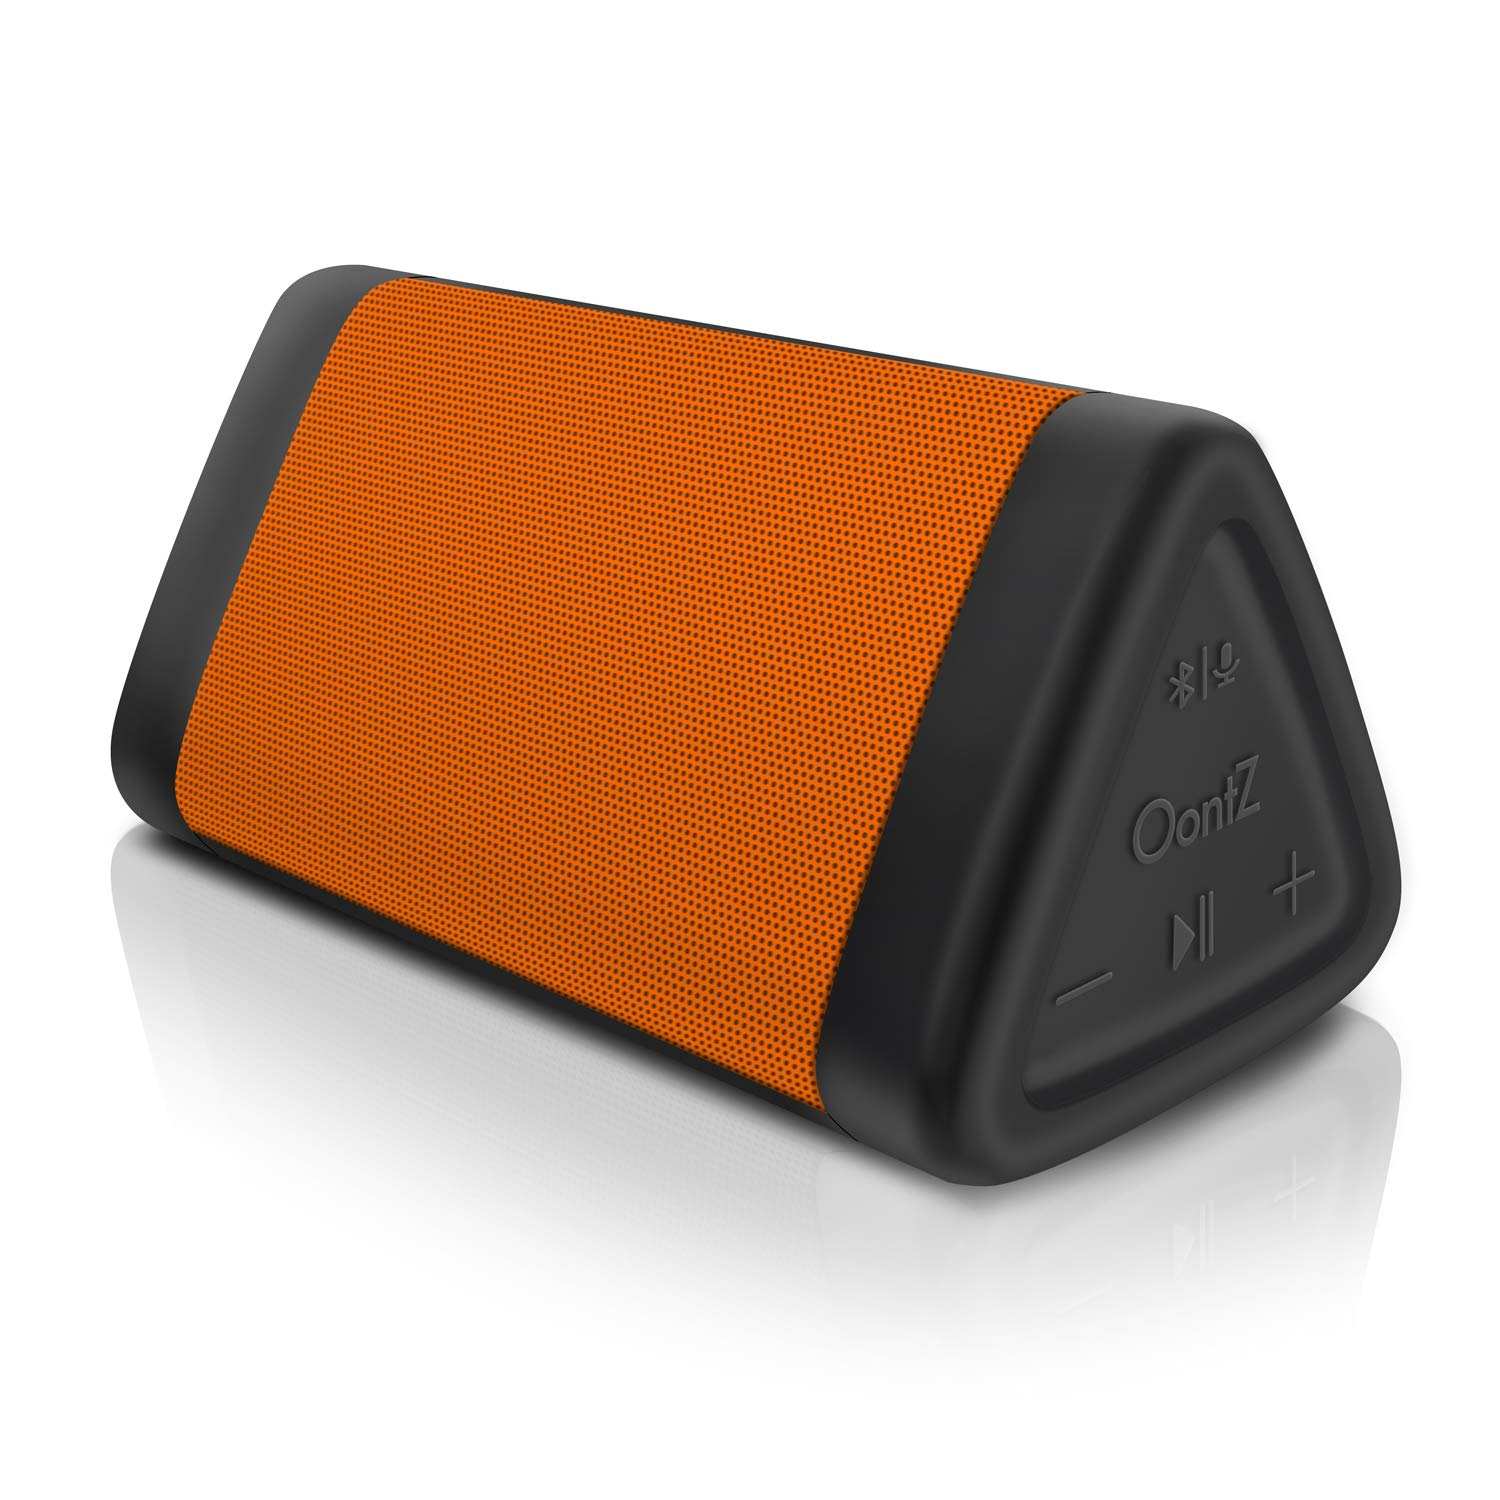 OontZ Angle 3 (3rd Gen) Portable Bluetooth Speaker, Louder Crystal Clear Stereo Sound, Rich Bass, 100 Ft Wireless Speaker Range, IPX5, Bluetooth Speakers by Cambridge SoundWorks (Orange) by Cambridge Soundworks (Image #1)